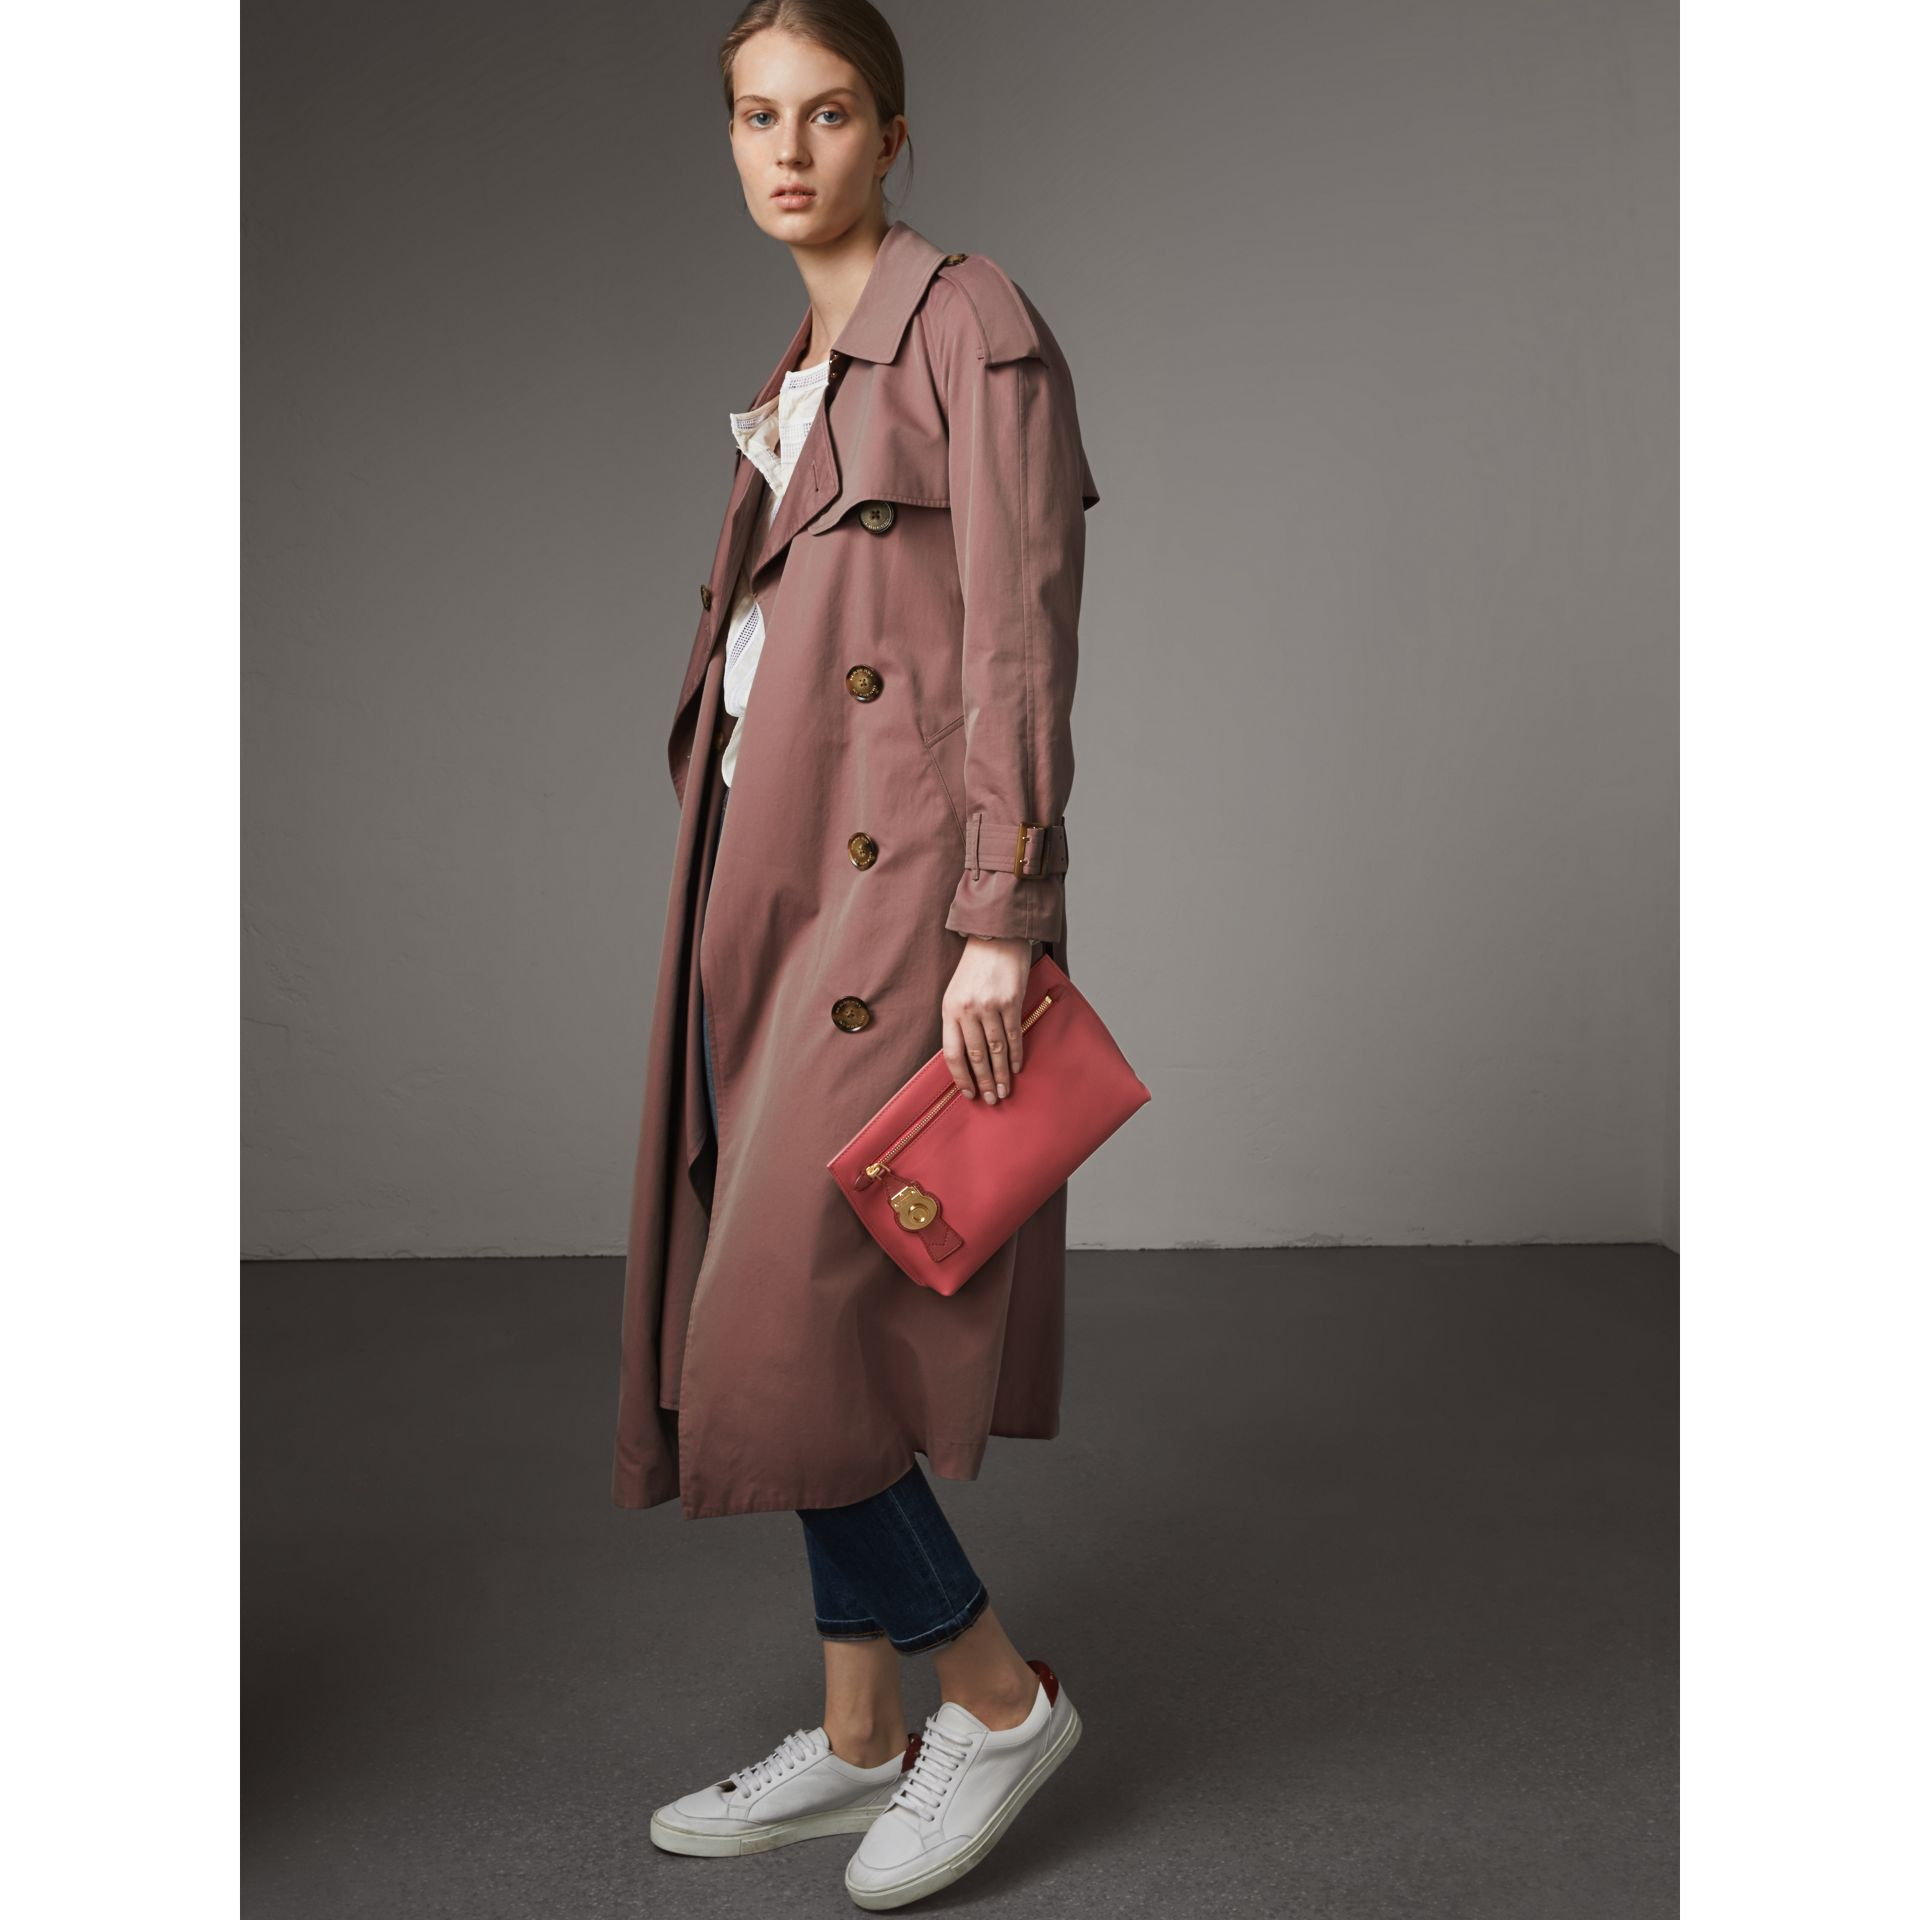 Pochette wristlet en cuir trench bicolore (Rose Blossom/rouge Antique) - Femme | Burberry - photo de la galerie 3